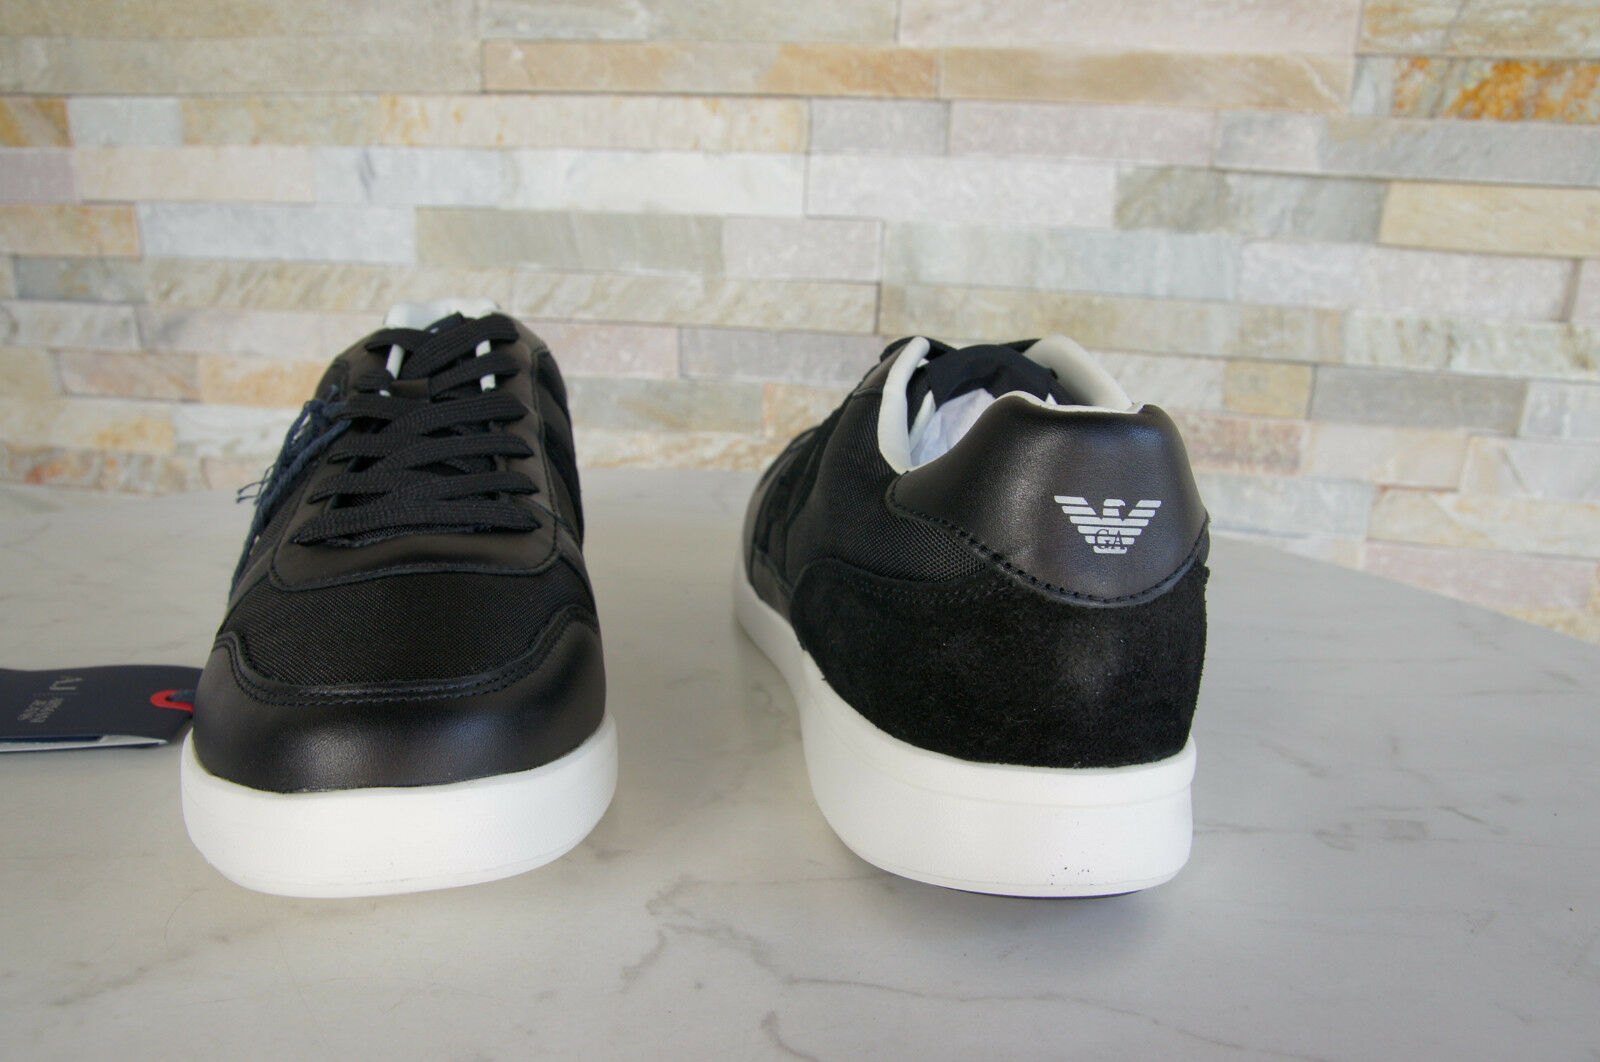 Armani Jeans Sneakers Trainers Size Shoes 44 Sport Shoes Size 6A441 New USA 10 Schwarz 522b12